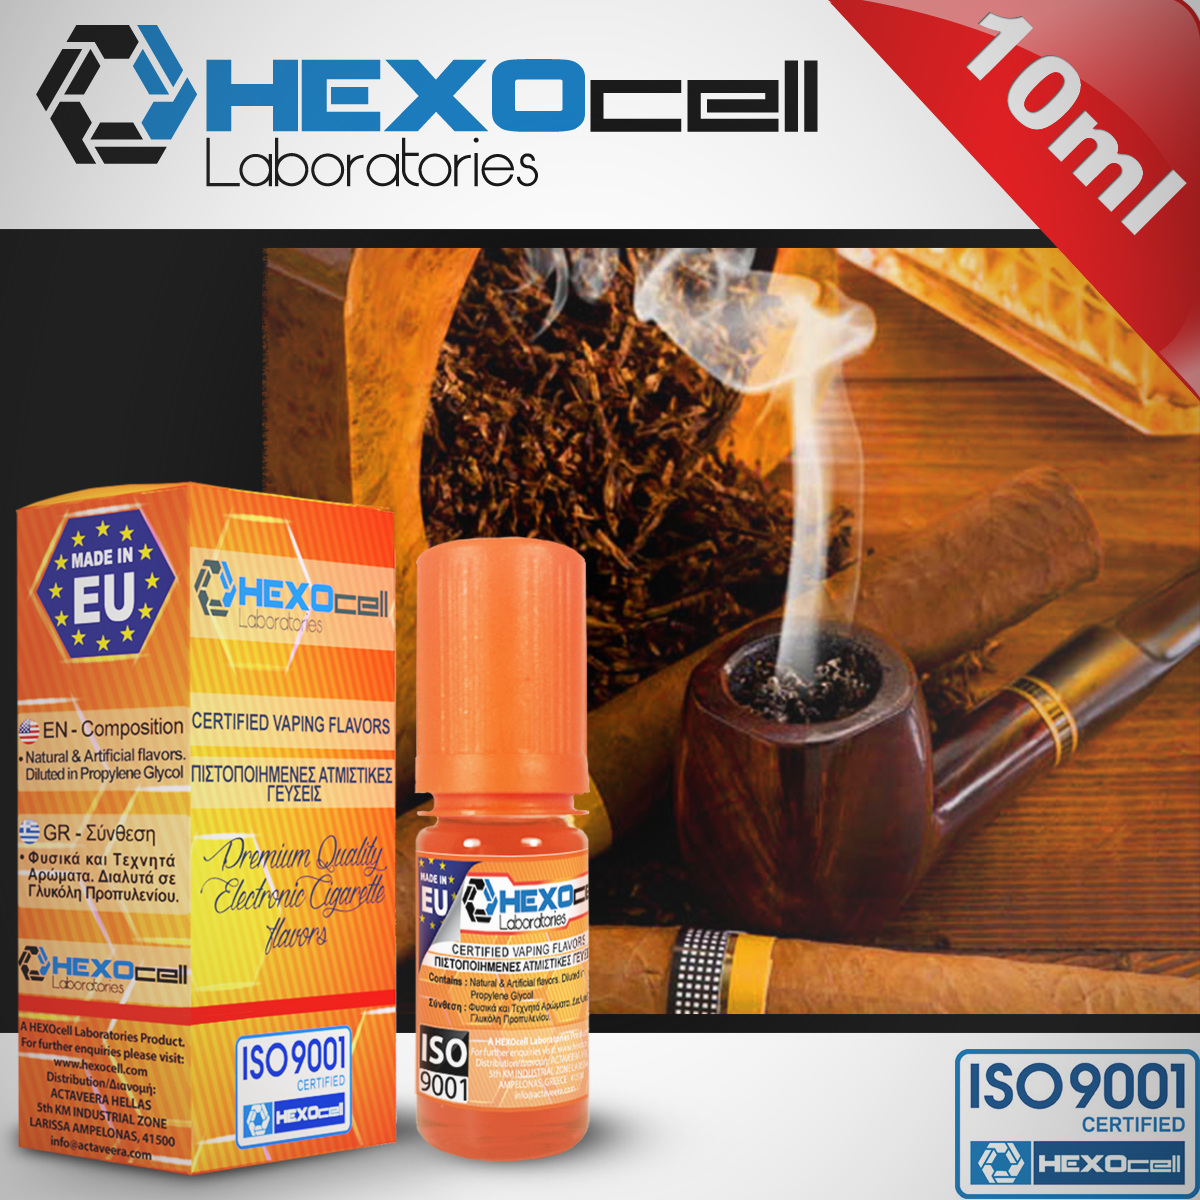 HEXOCELL - 10ΜL CAPTAIN'S PIPE (ΗΠΙΟΣ ΚΑΠΝΟΣ ΠΙΠΑΣ) ΣΥΜΠΥΚΝΩΜΕΝΟ ΑΡΩΜΑ